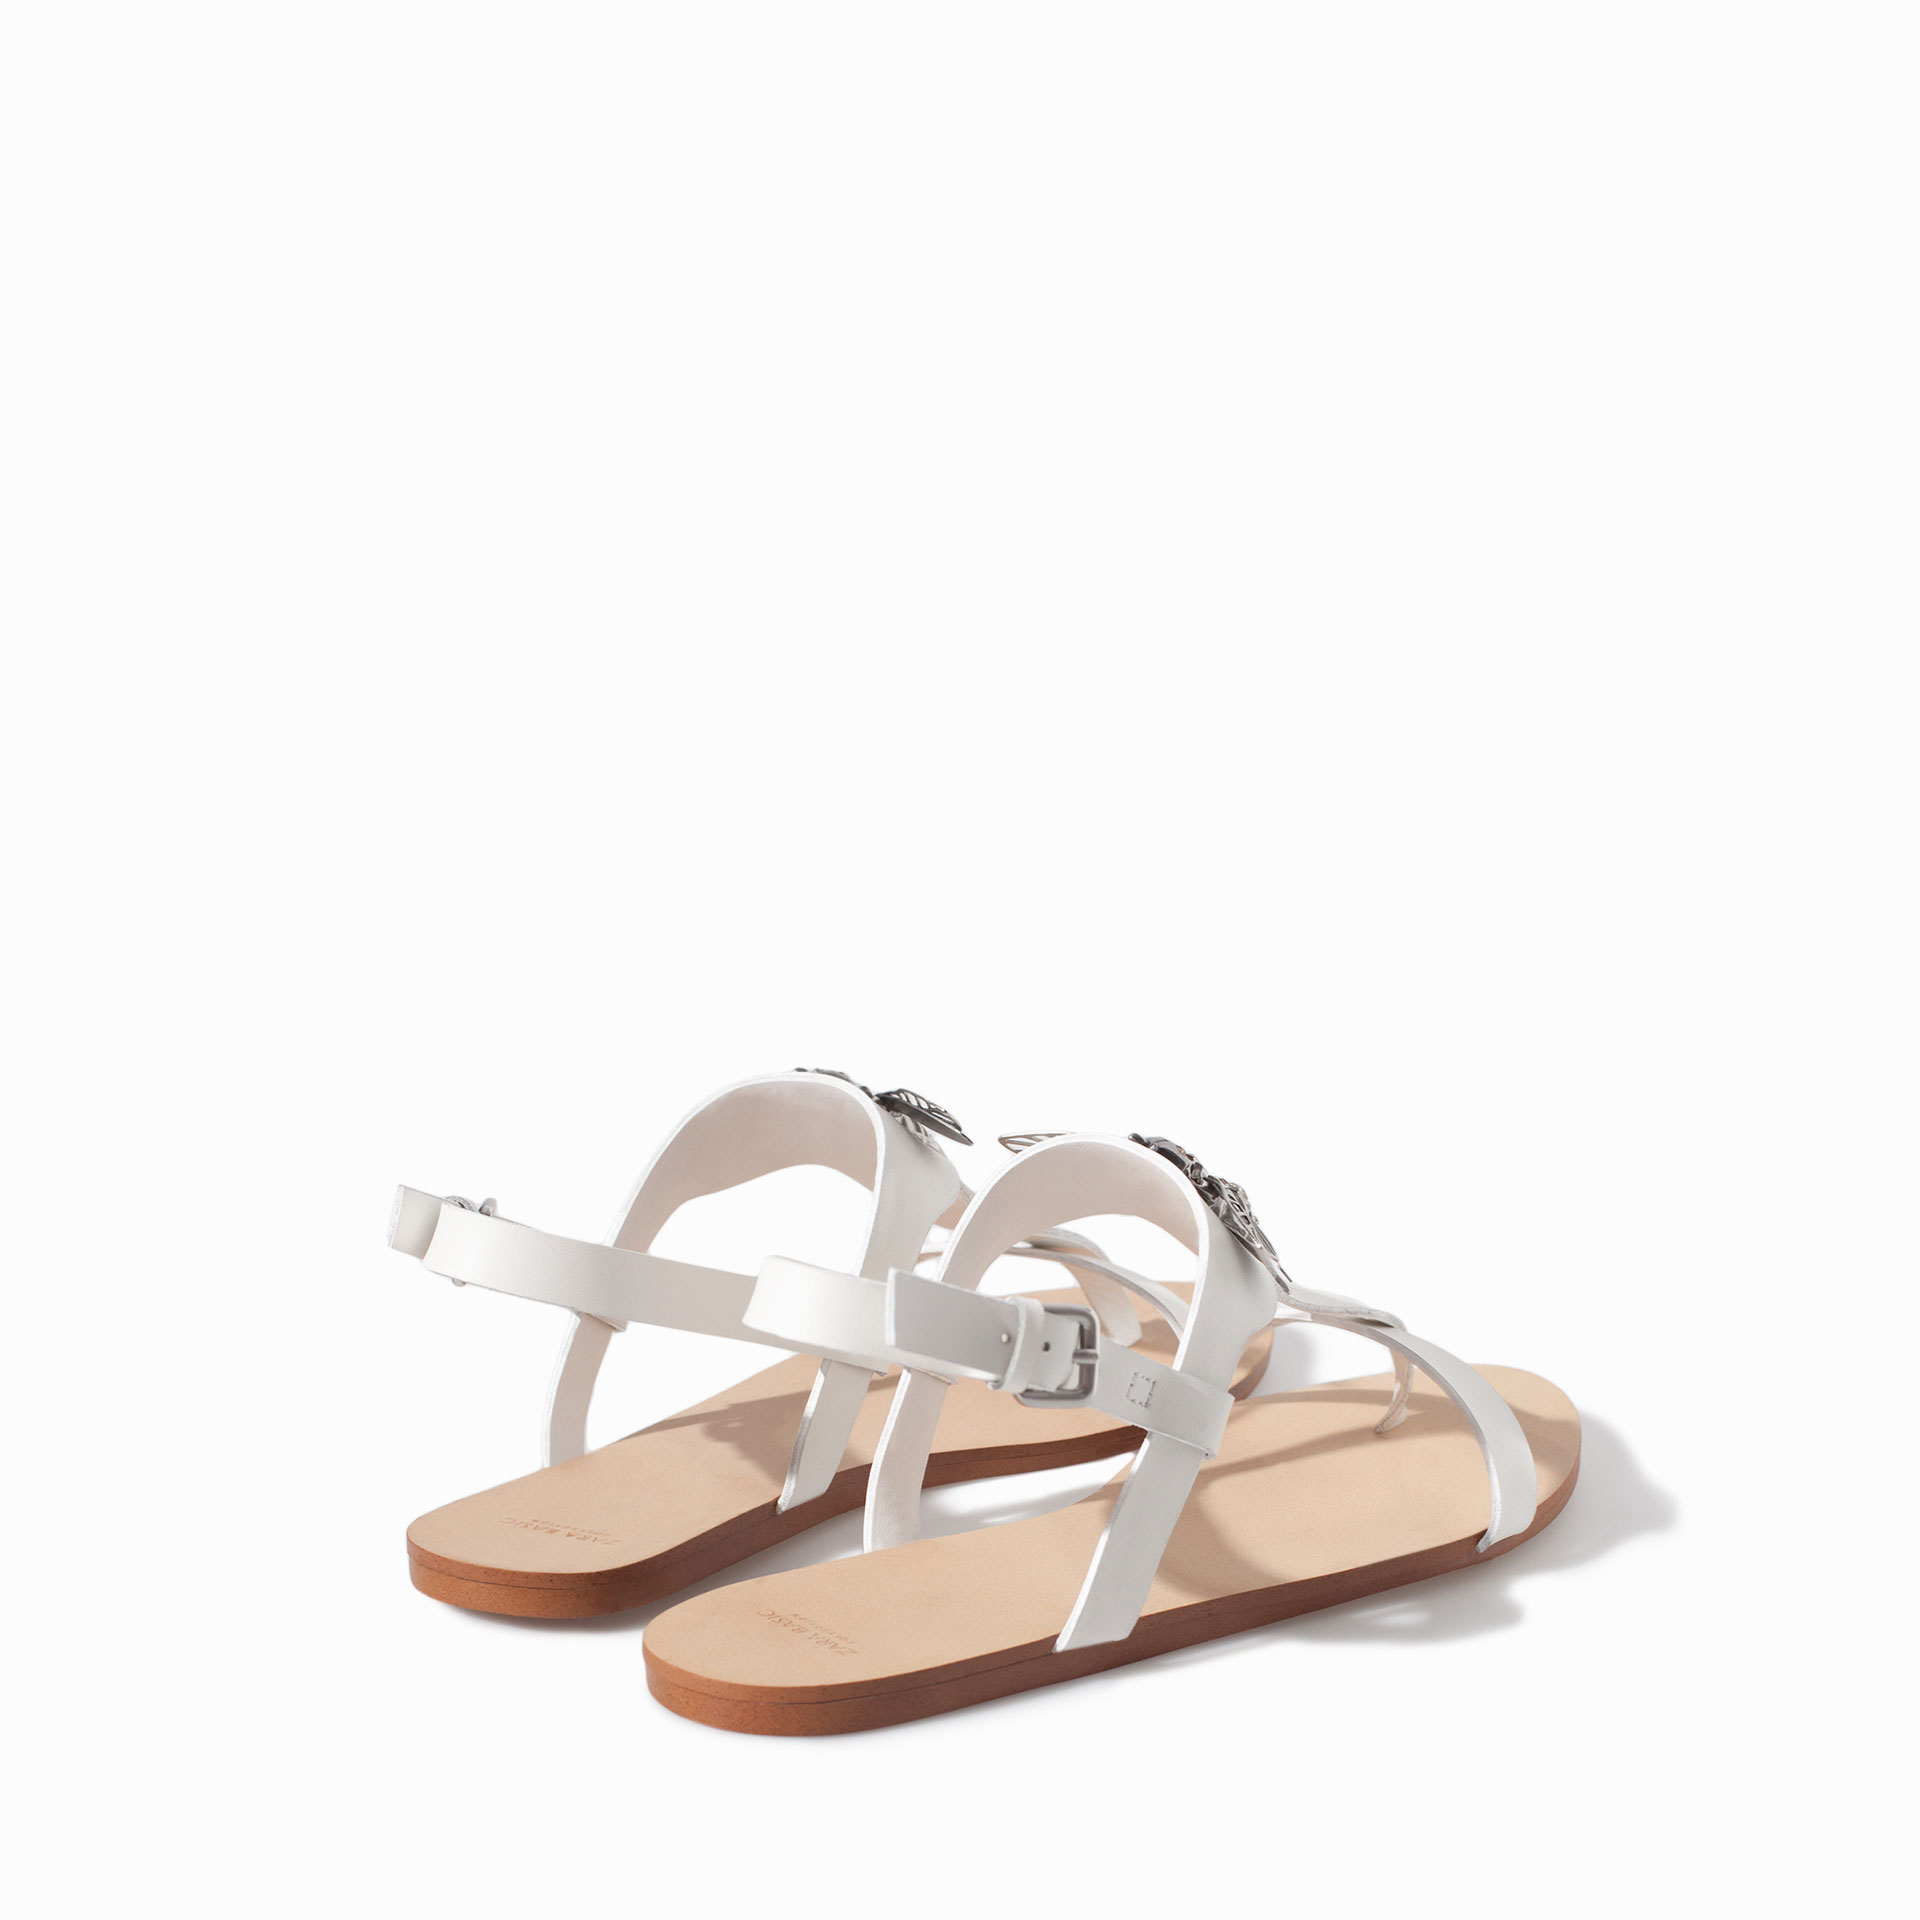 Zara Flat Leather Sandal With Decorative Detail In White